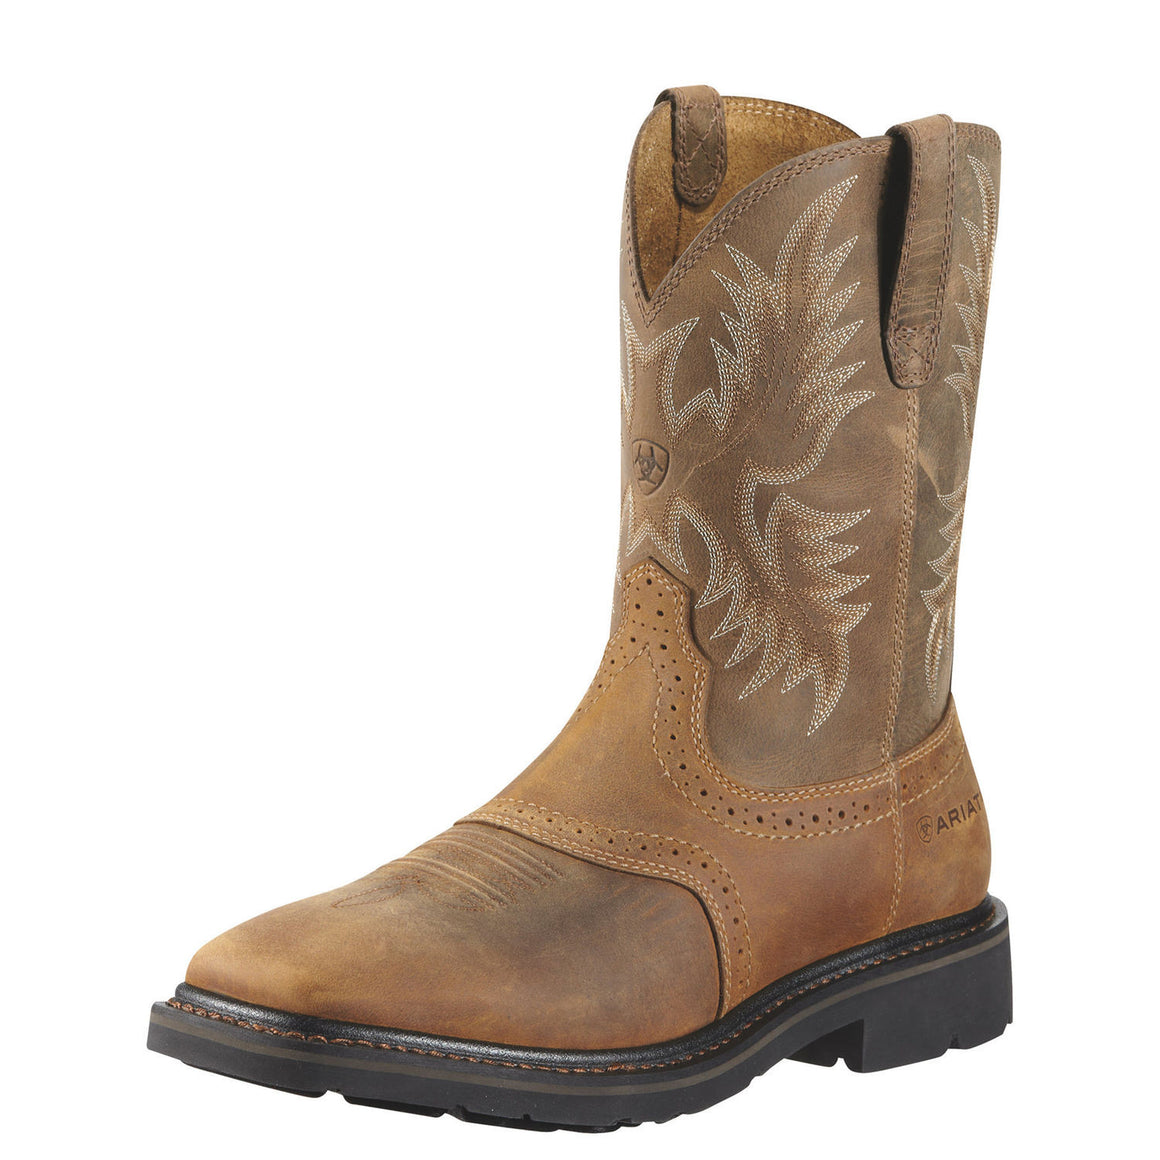 Ariat Men's Sierra Square Toe - Aged Bark 10010148